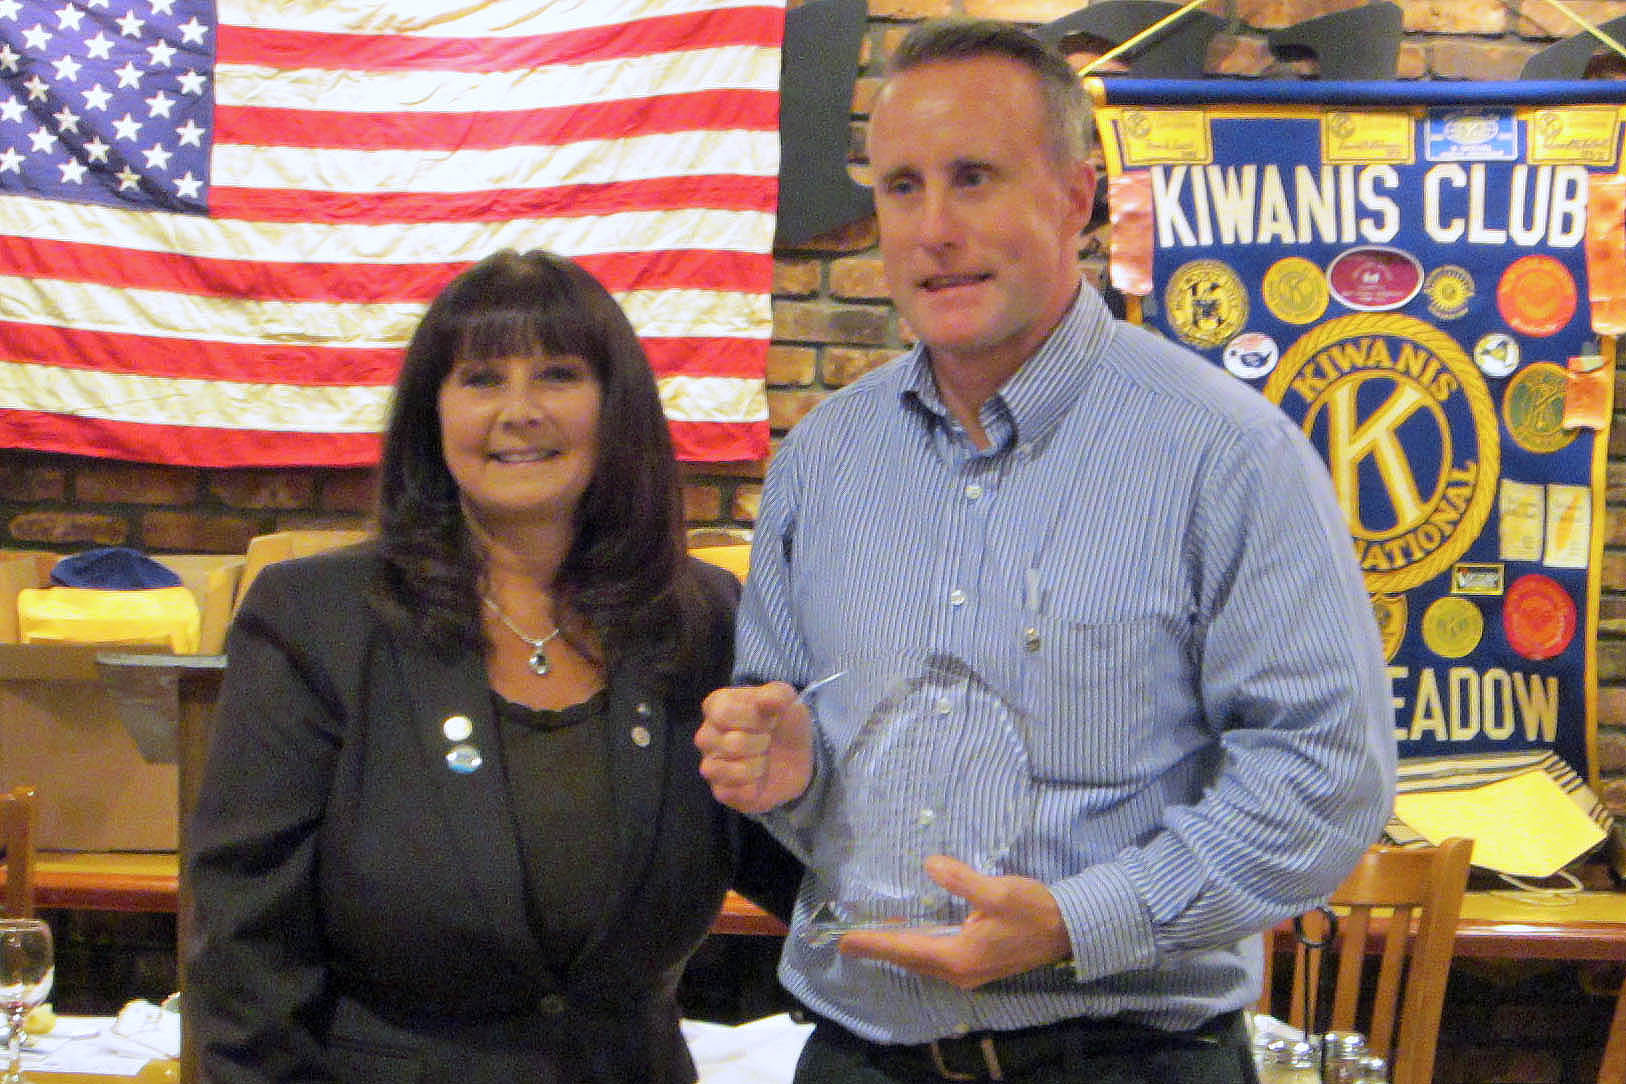 Brian O'Flaherty was recently honored by Kiwanis past president Debbie Kirsh as Kiwanian of the Year.